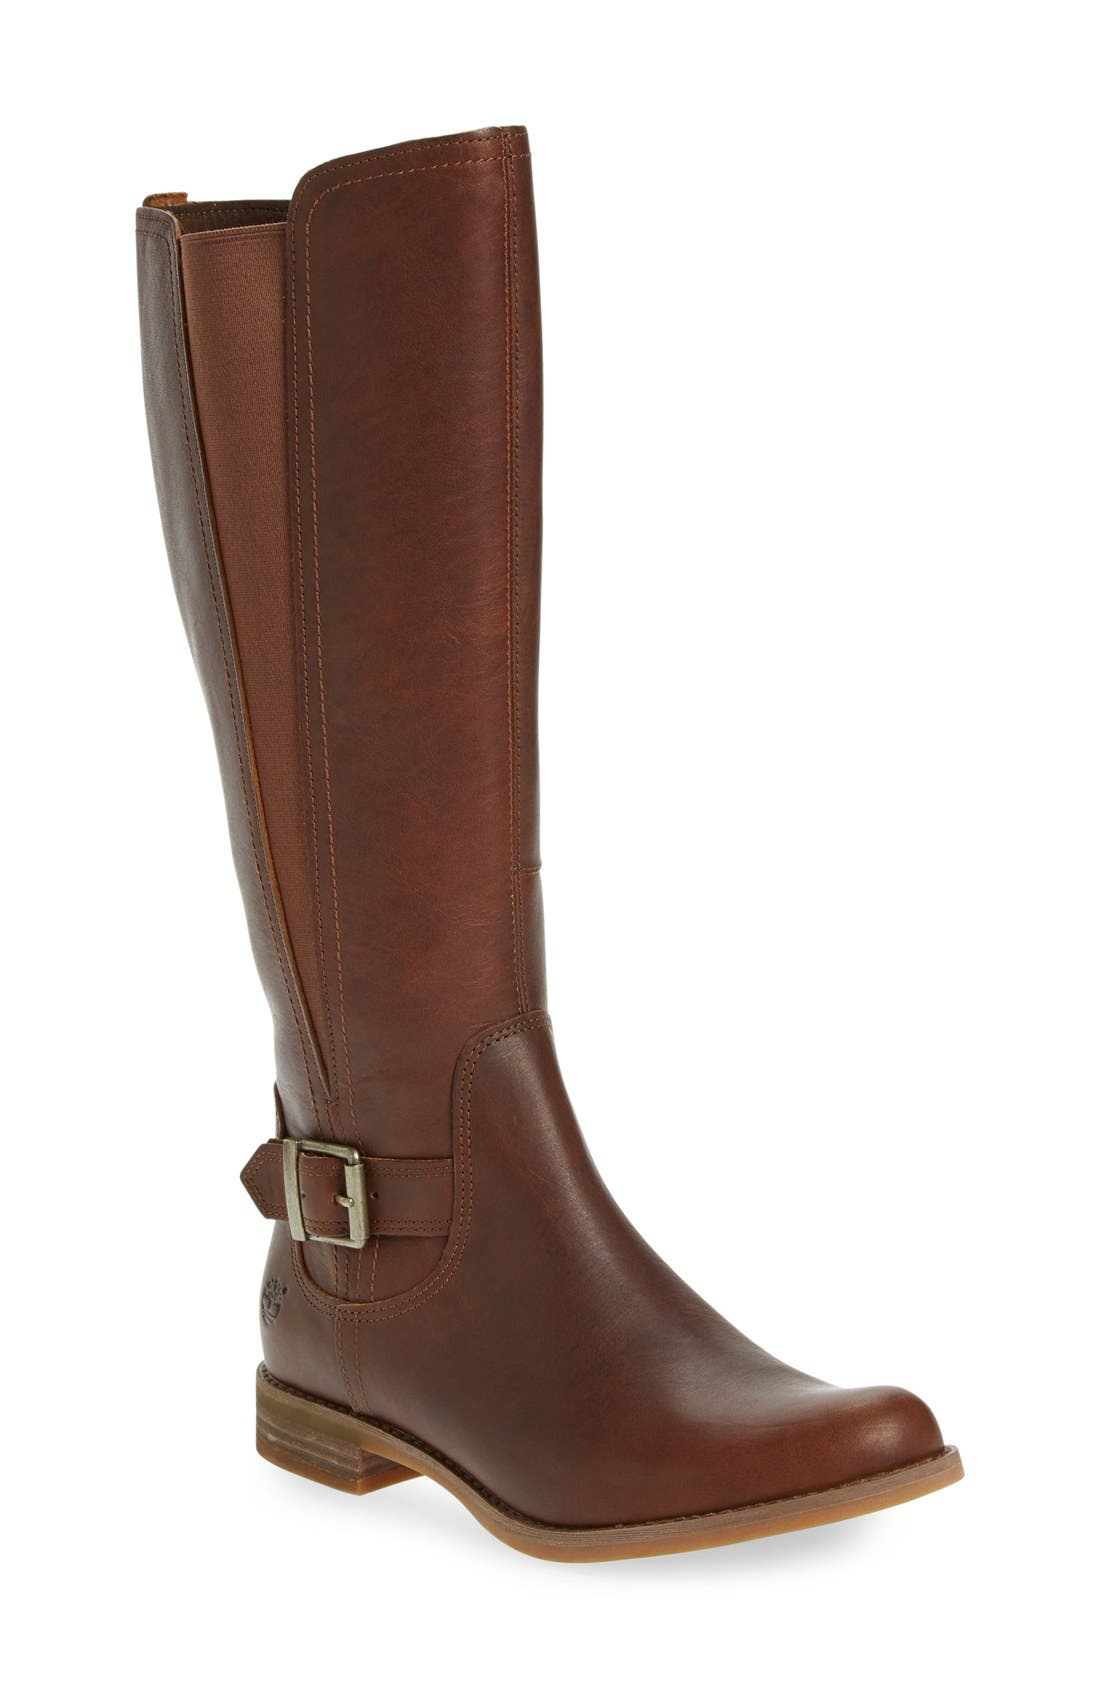 Alternate Image 1 Selected - Timberland 'Savin Hill' Tall Boot (Women)